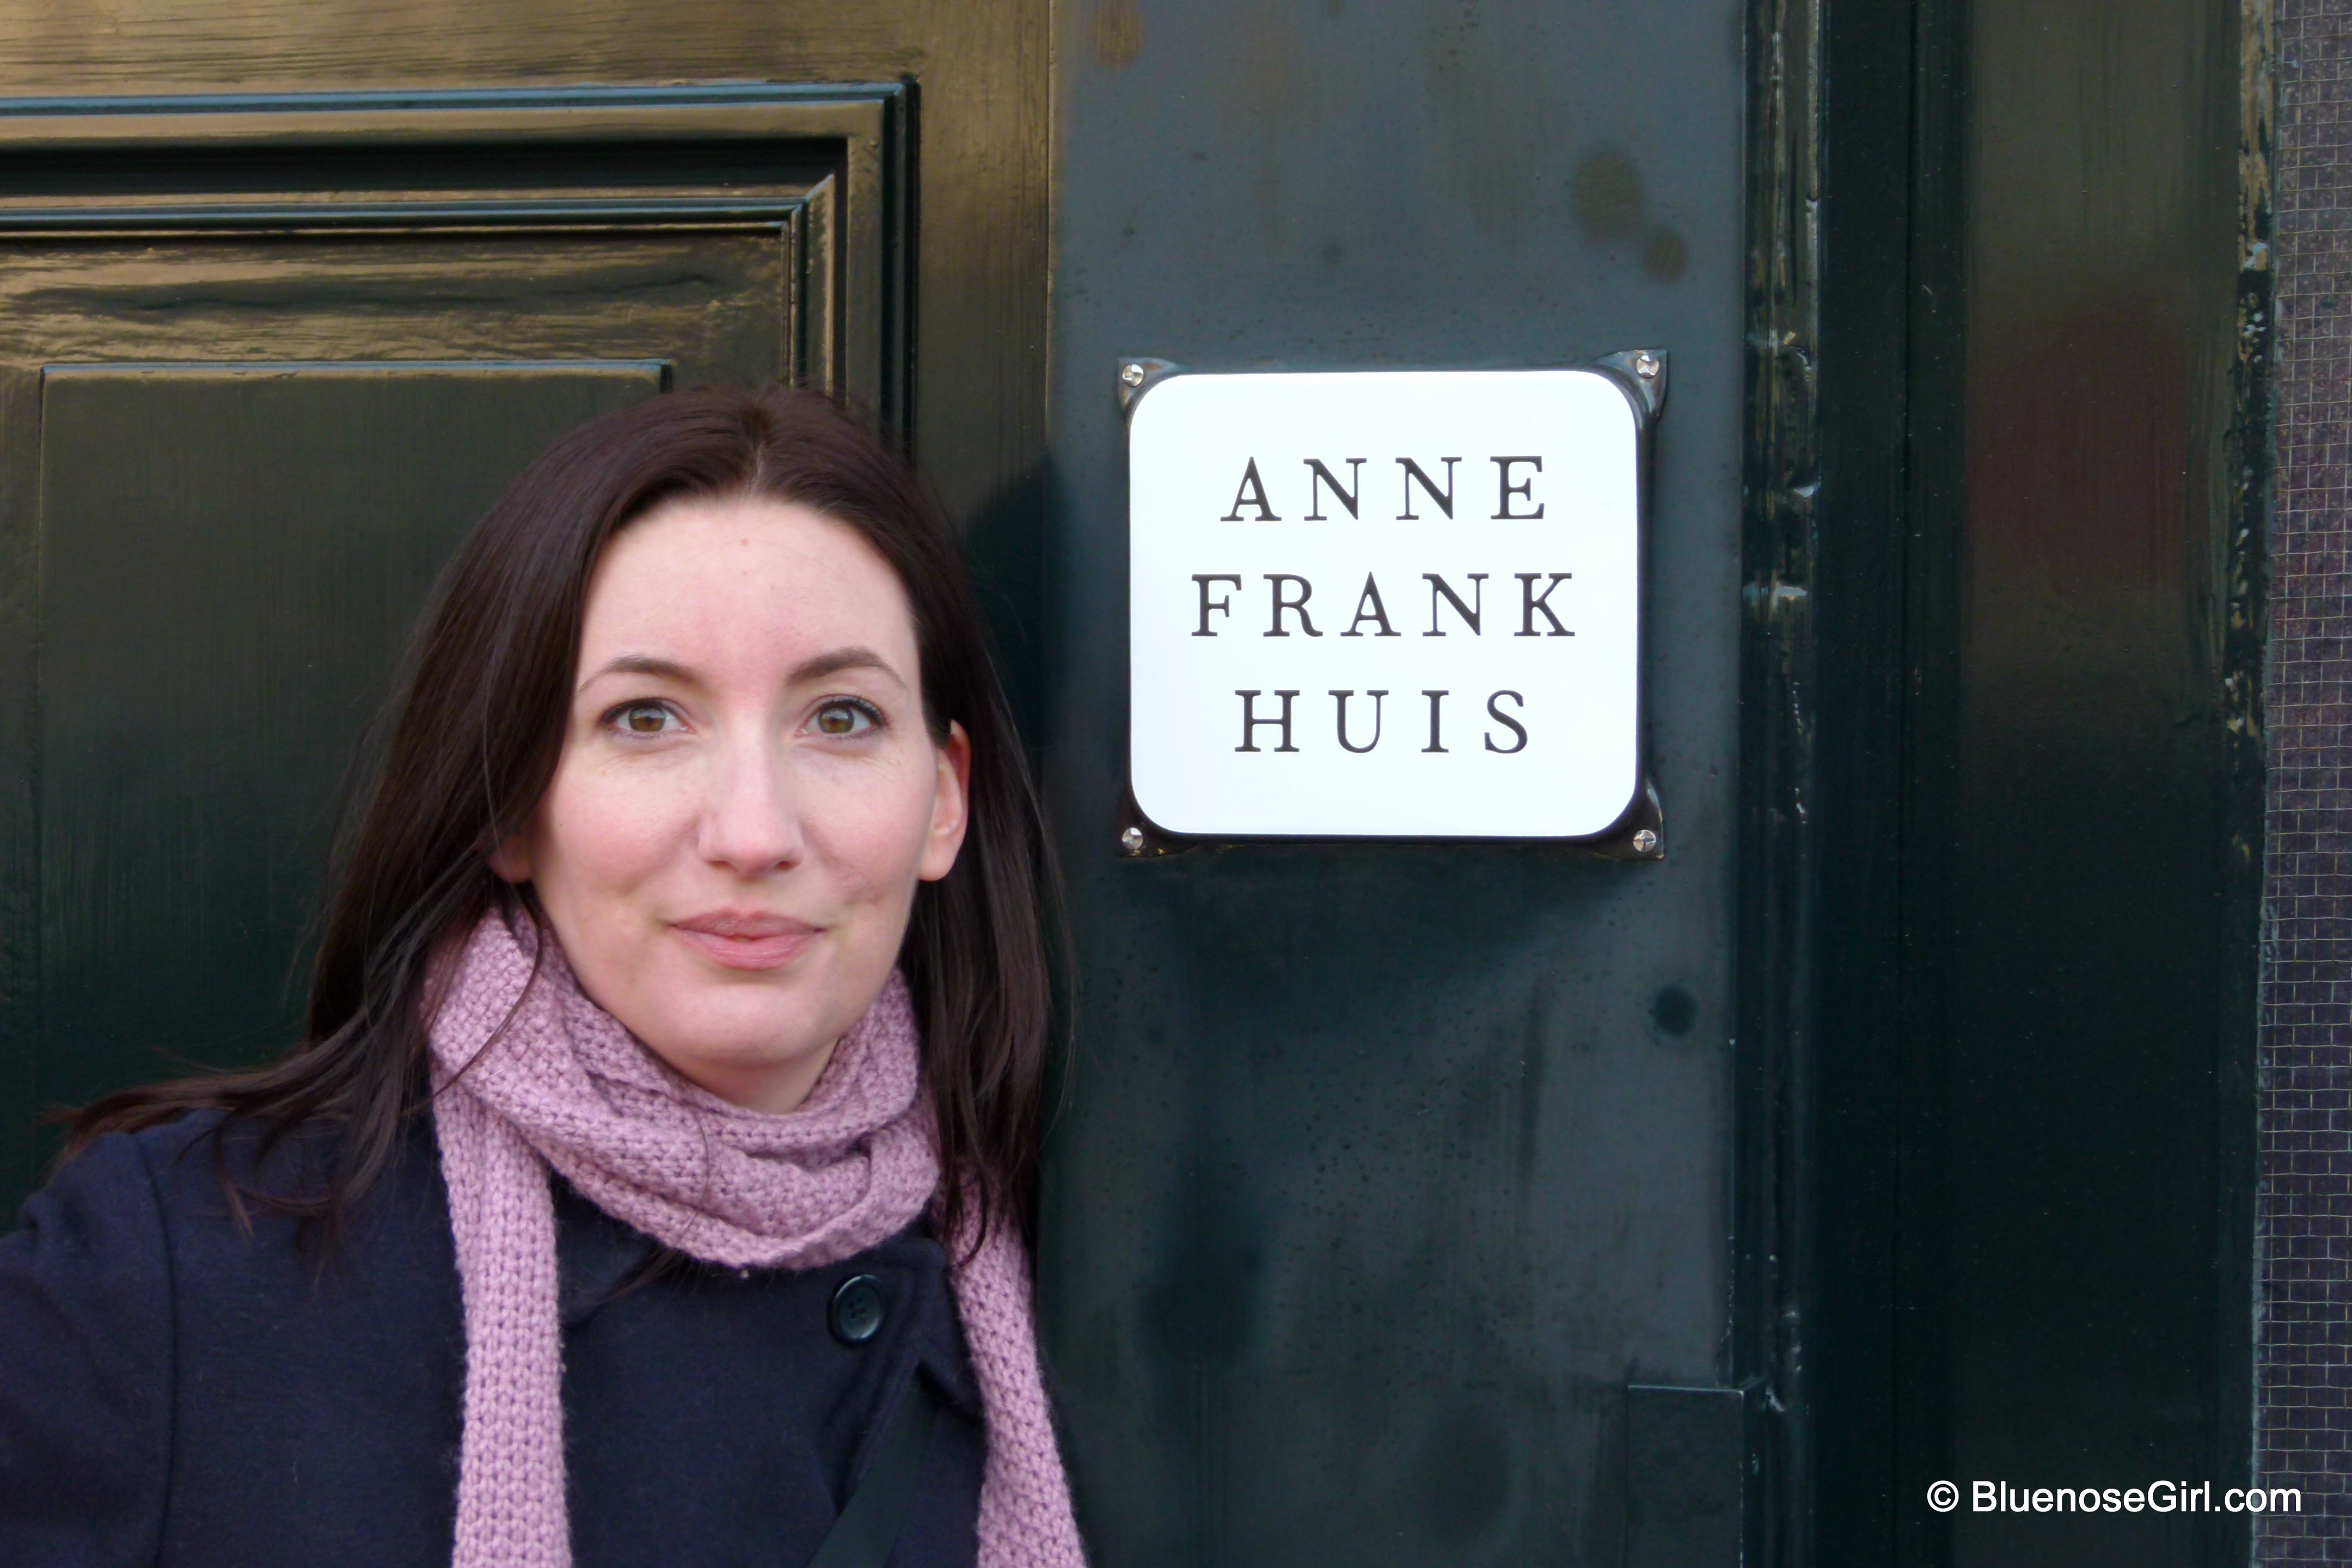 me in-front of the Anne Frank House